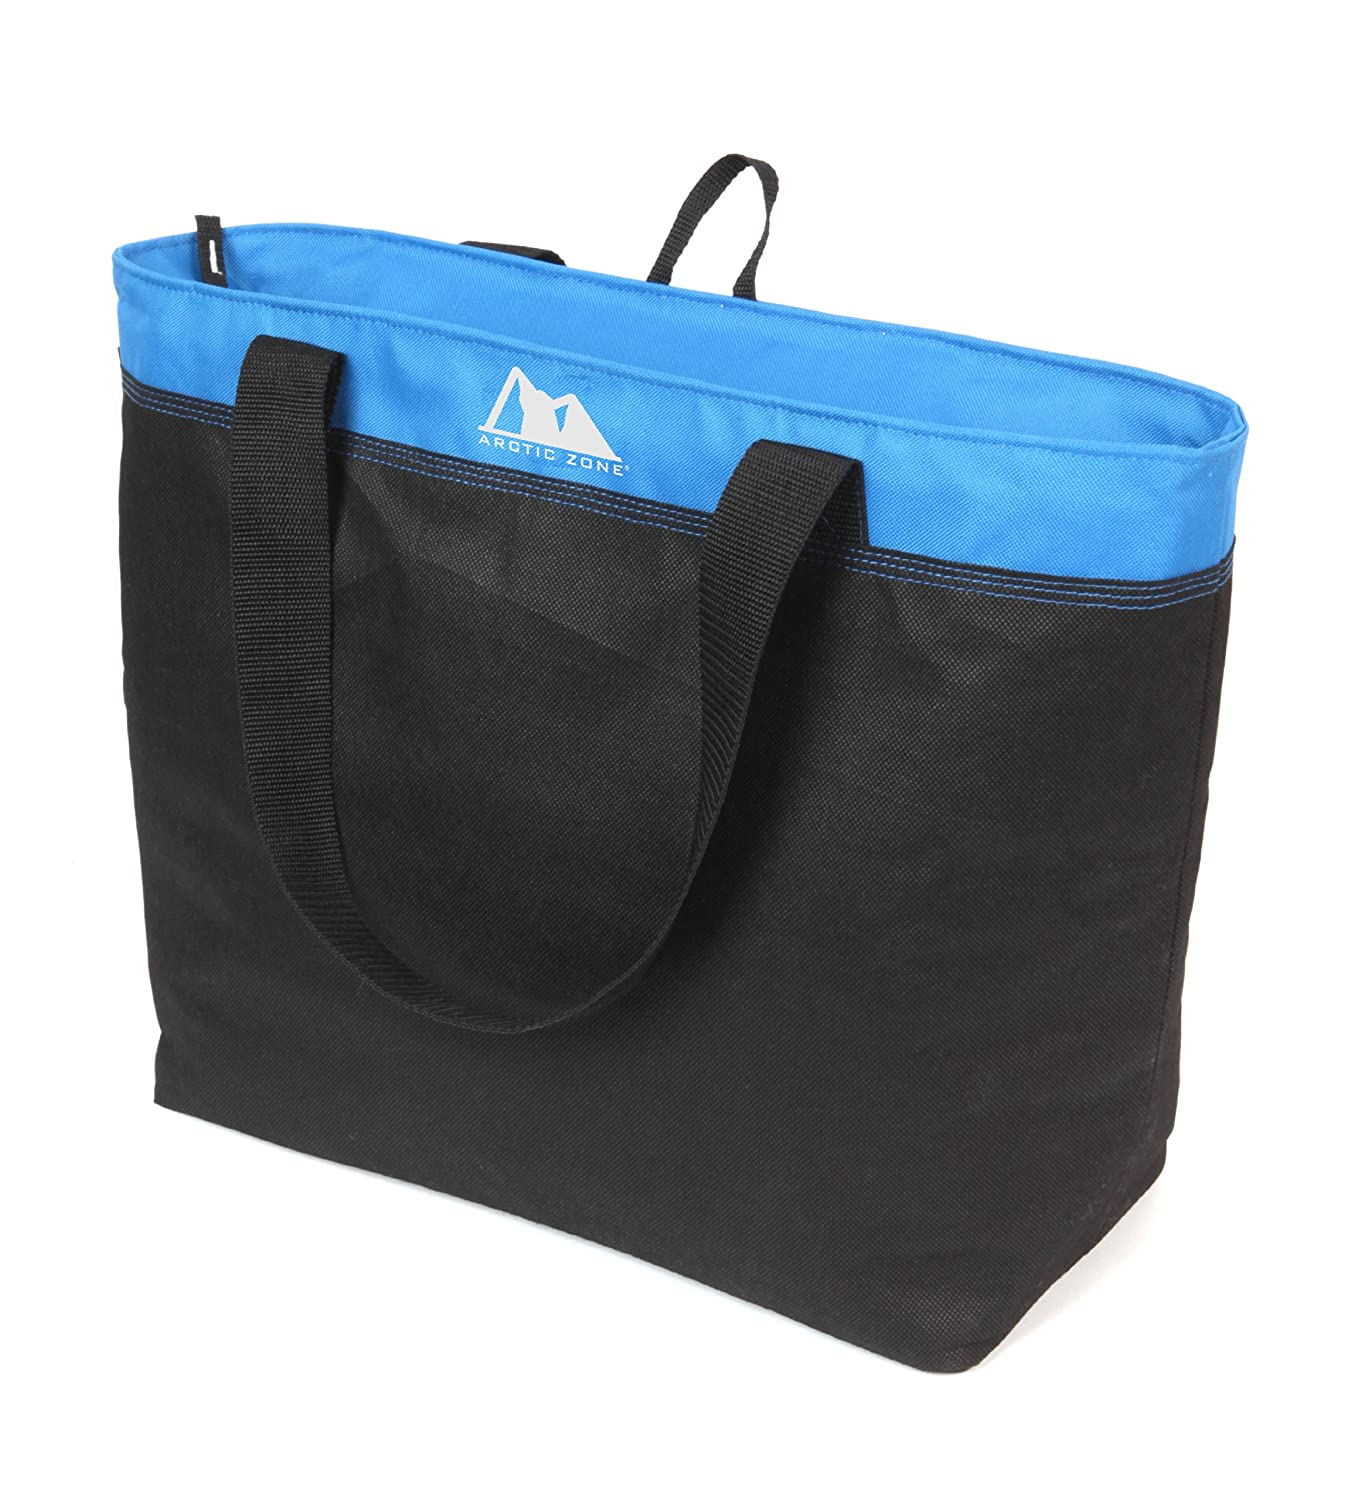 California Innovations 45 Kann Blau Eco Blend-Gefrierschrank Tote 1-11301-03-02